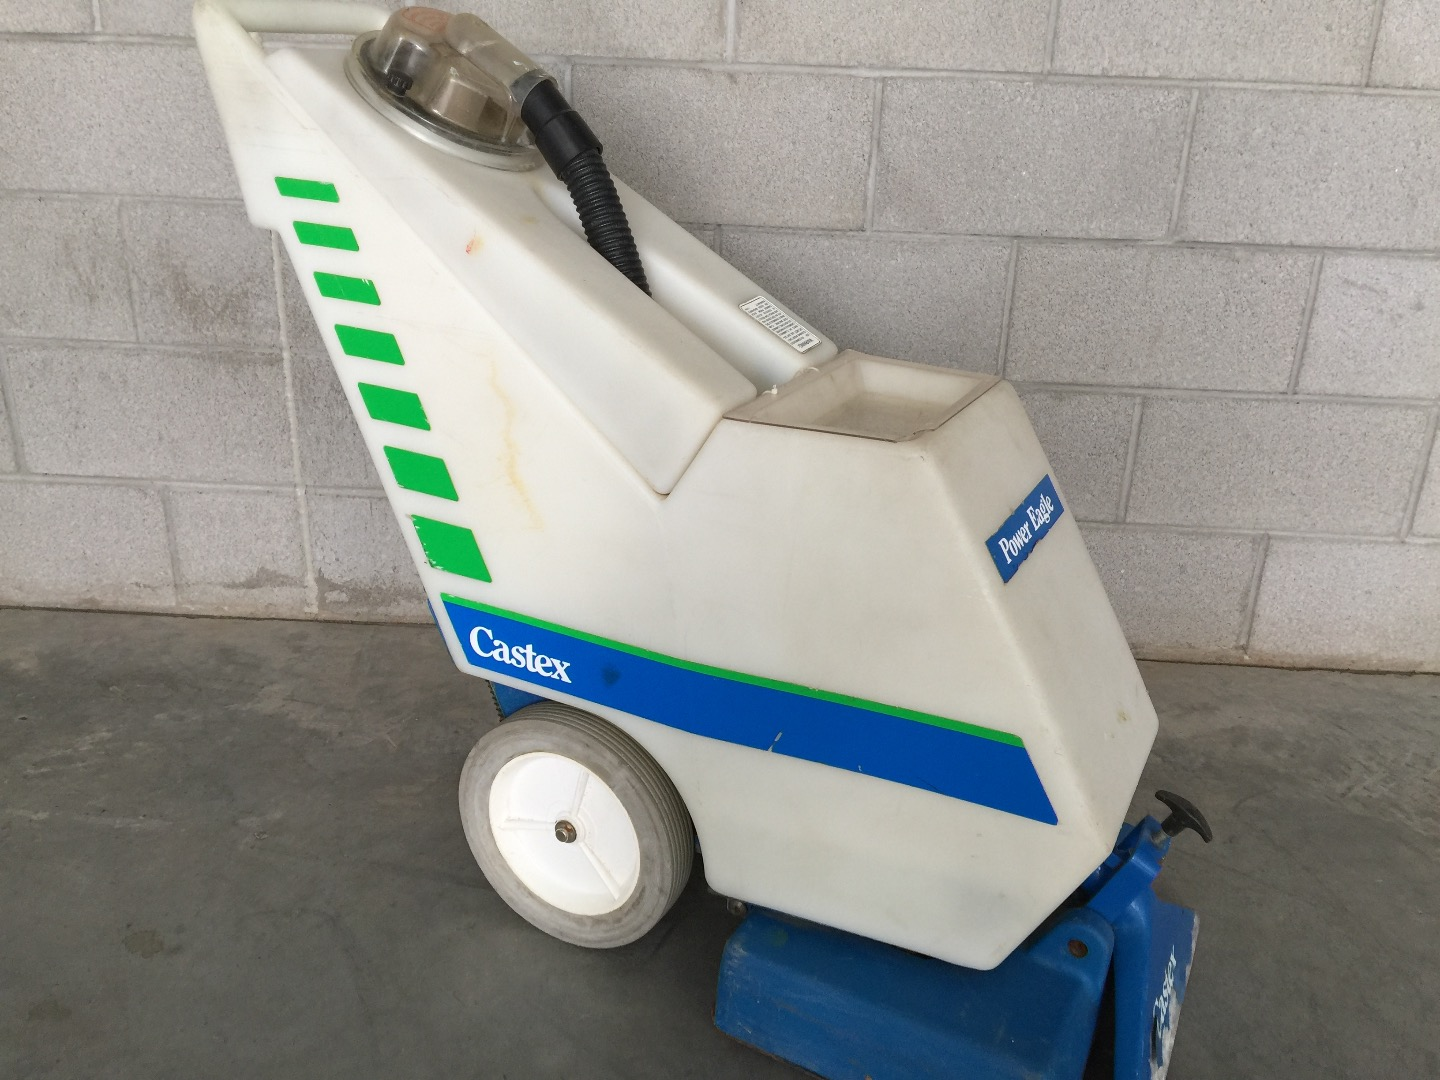 Used Castex Power Eagle 700 Carpet Cleaner Extractor